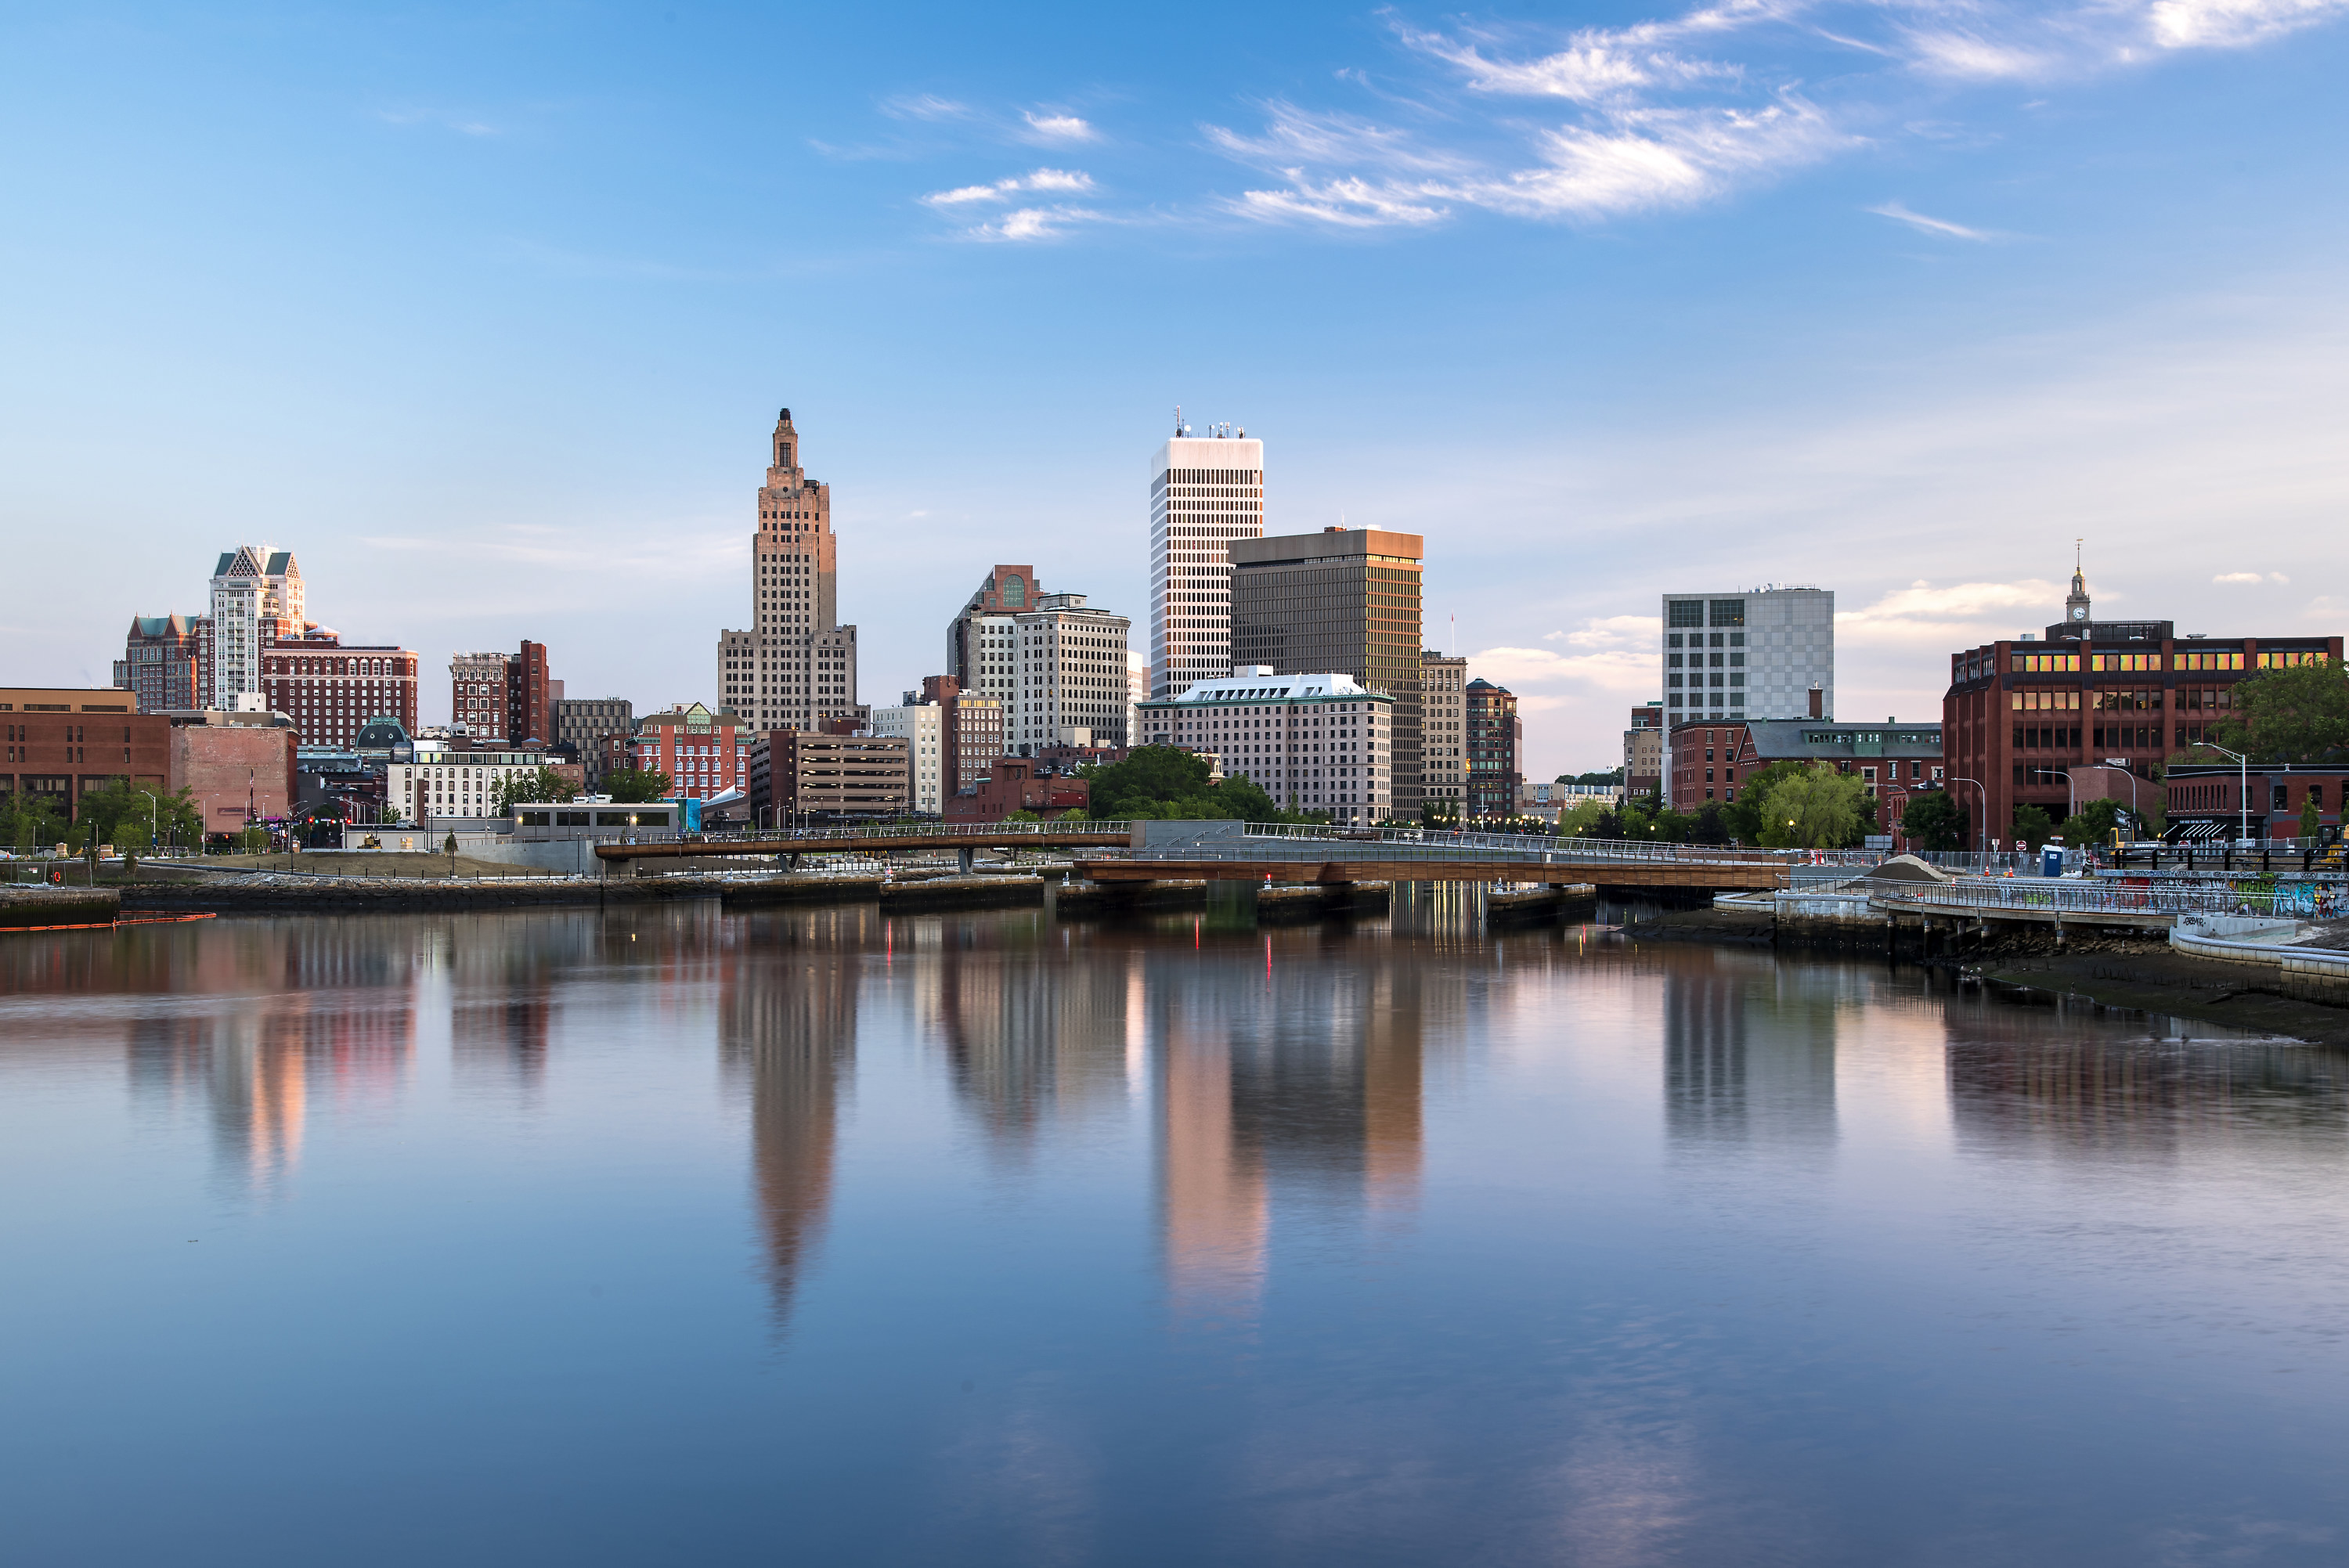 View looking toward Providence on the water